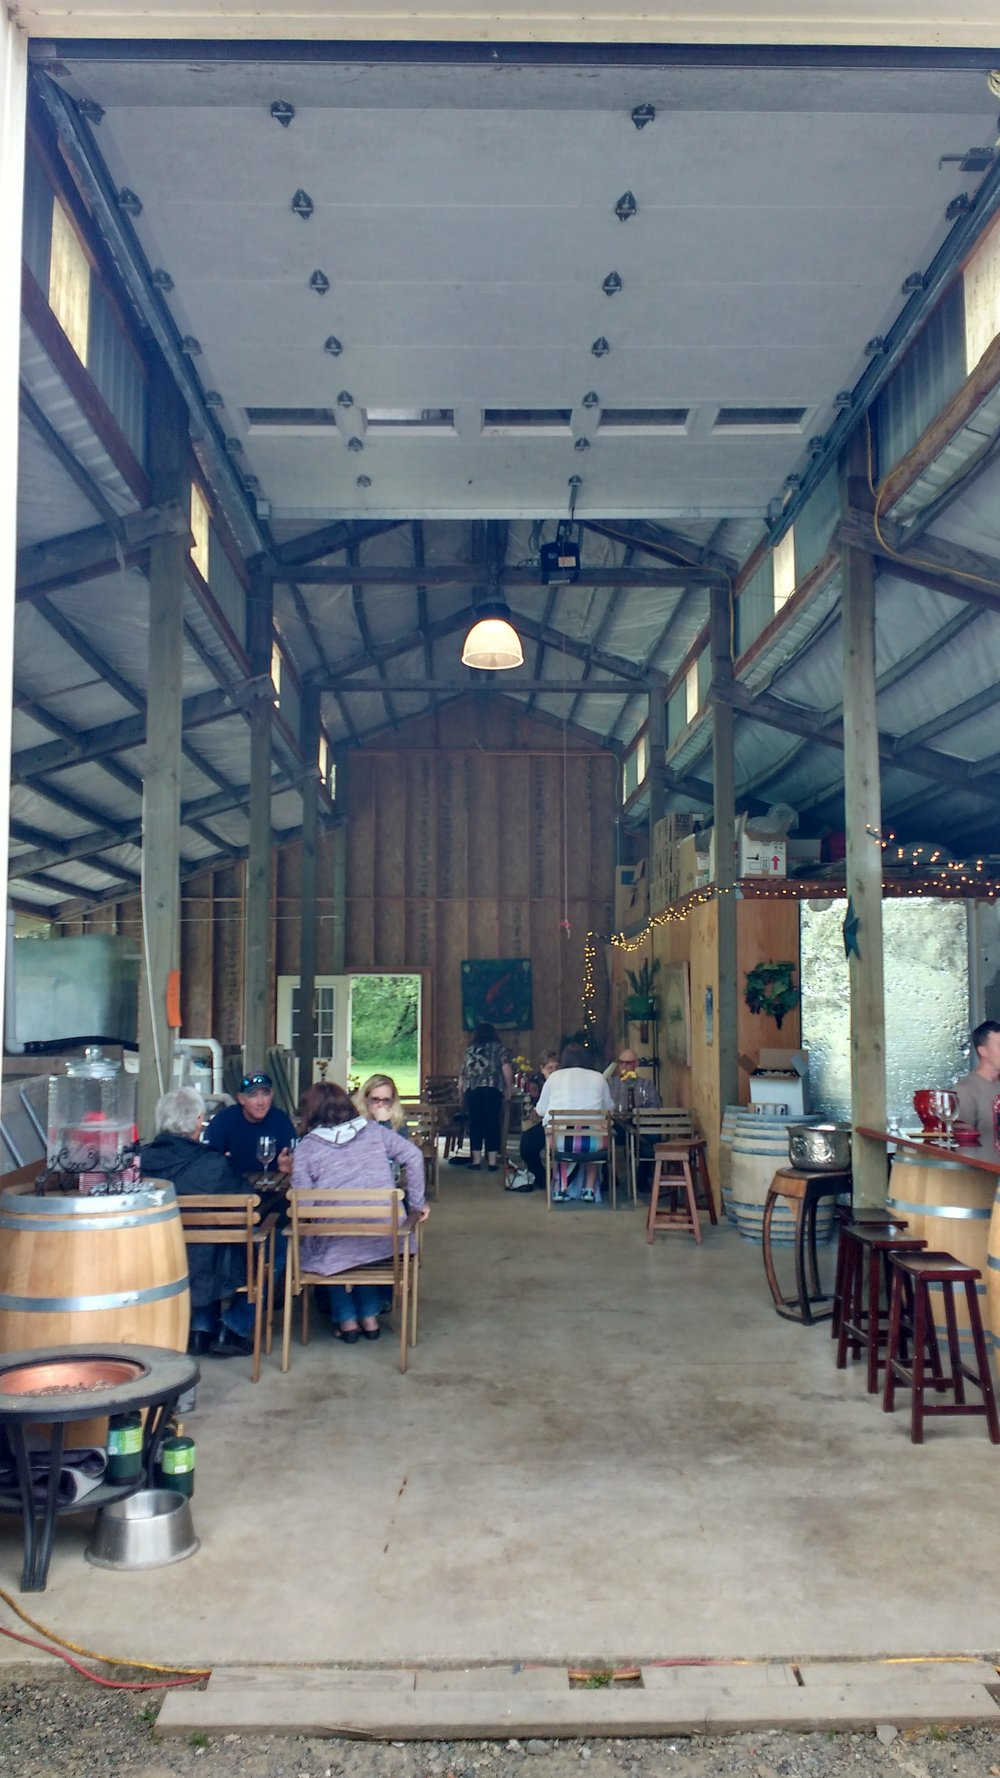 The new tasting room at Koi Pond Cellars (with more changes to come)